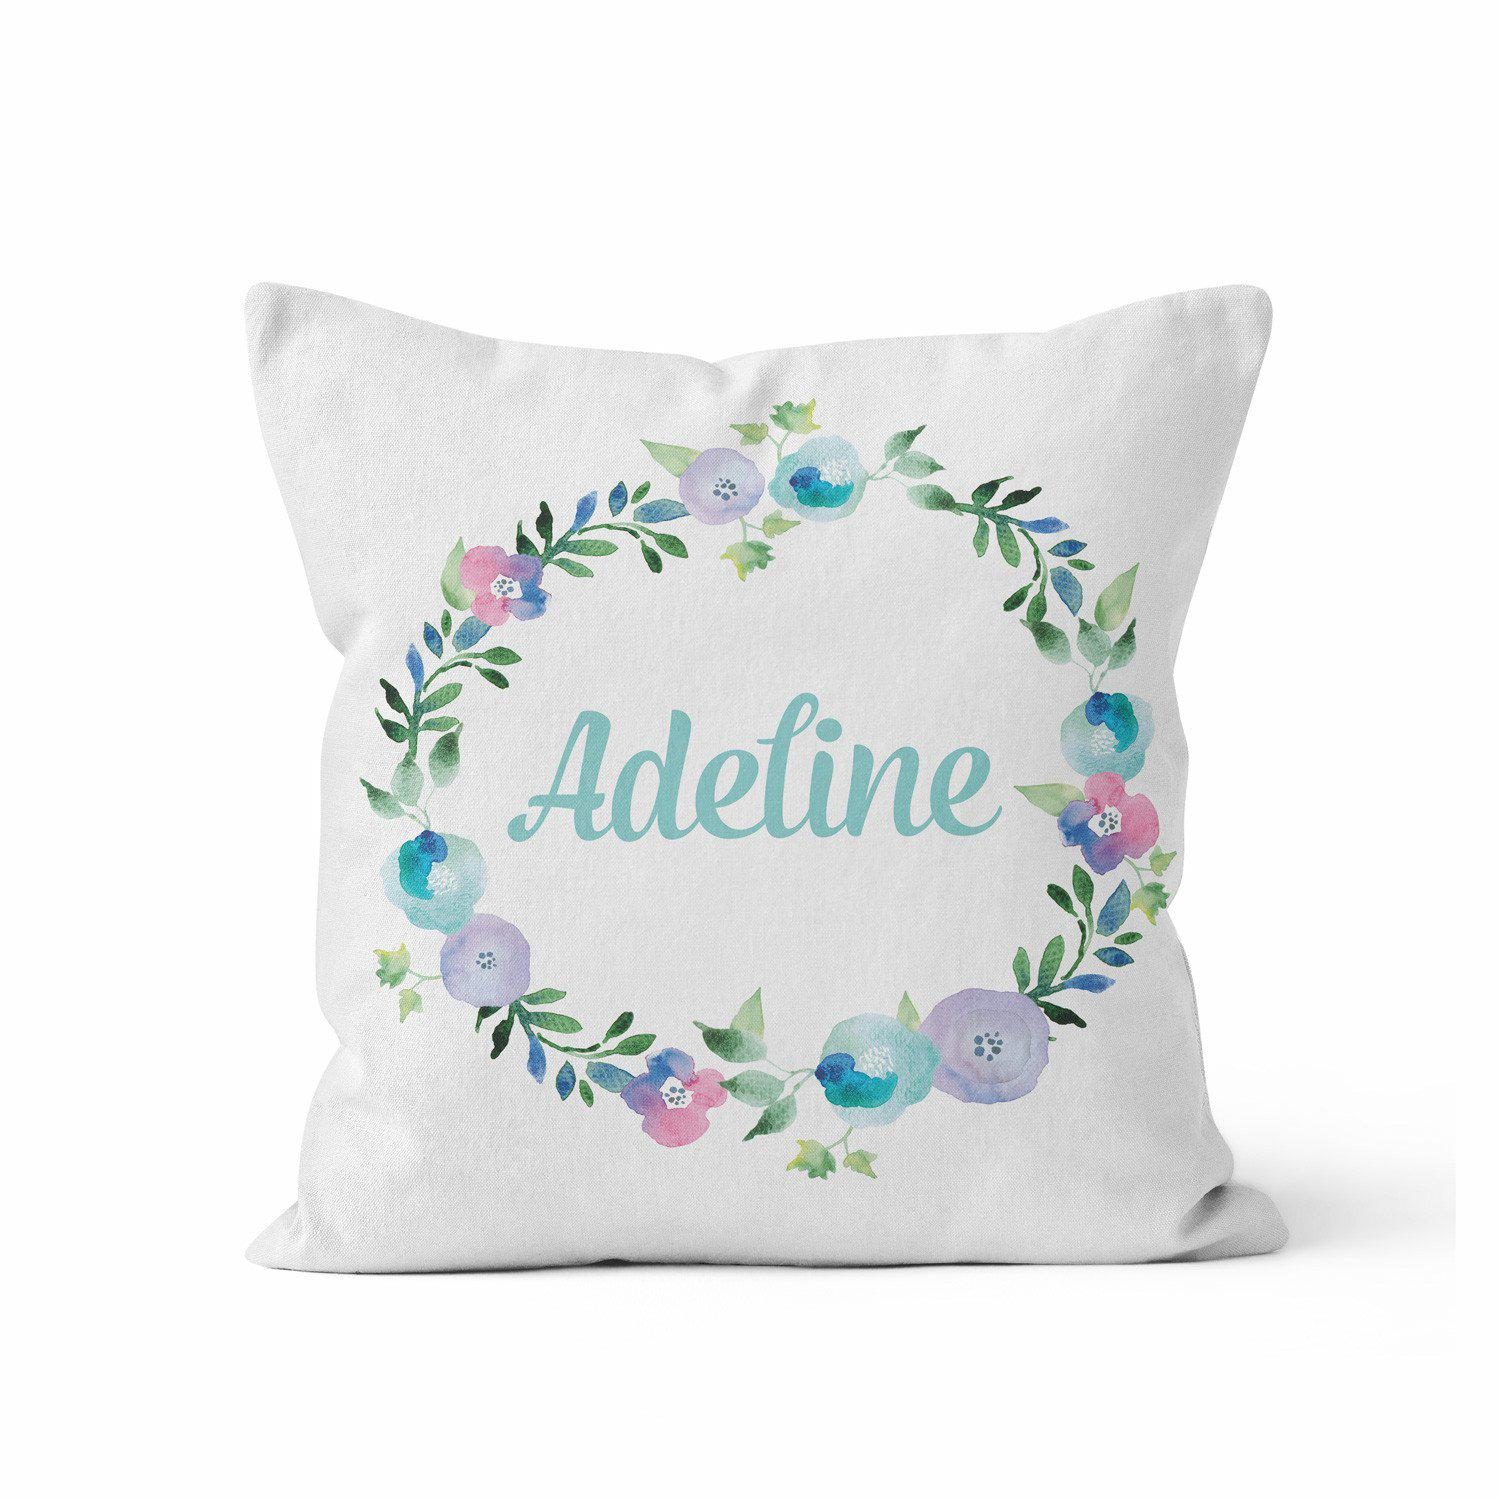 Nursery Pillow Cover, Blue Floral Wreath by Kalilaine - Kalilaine Creations